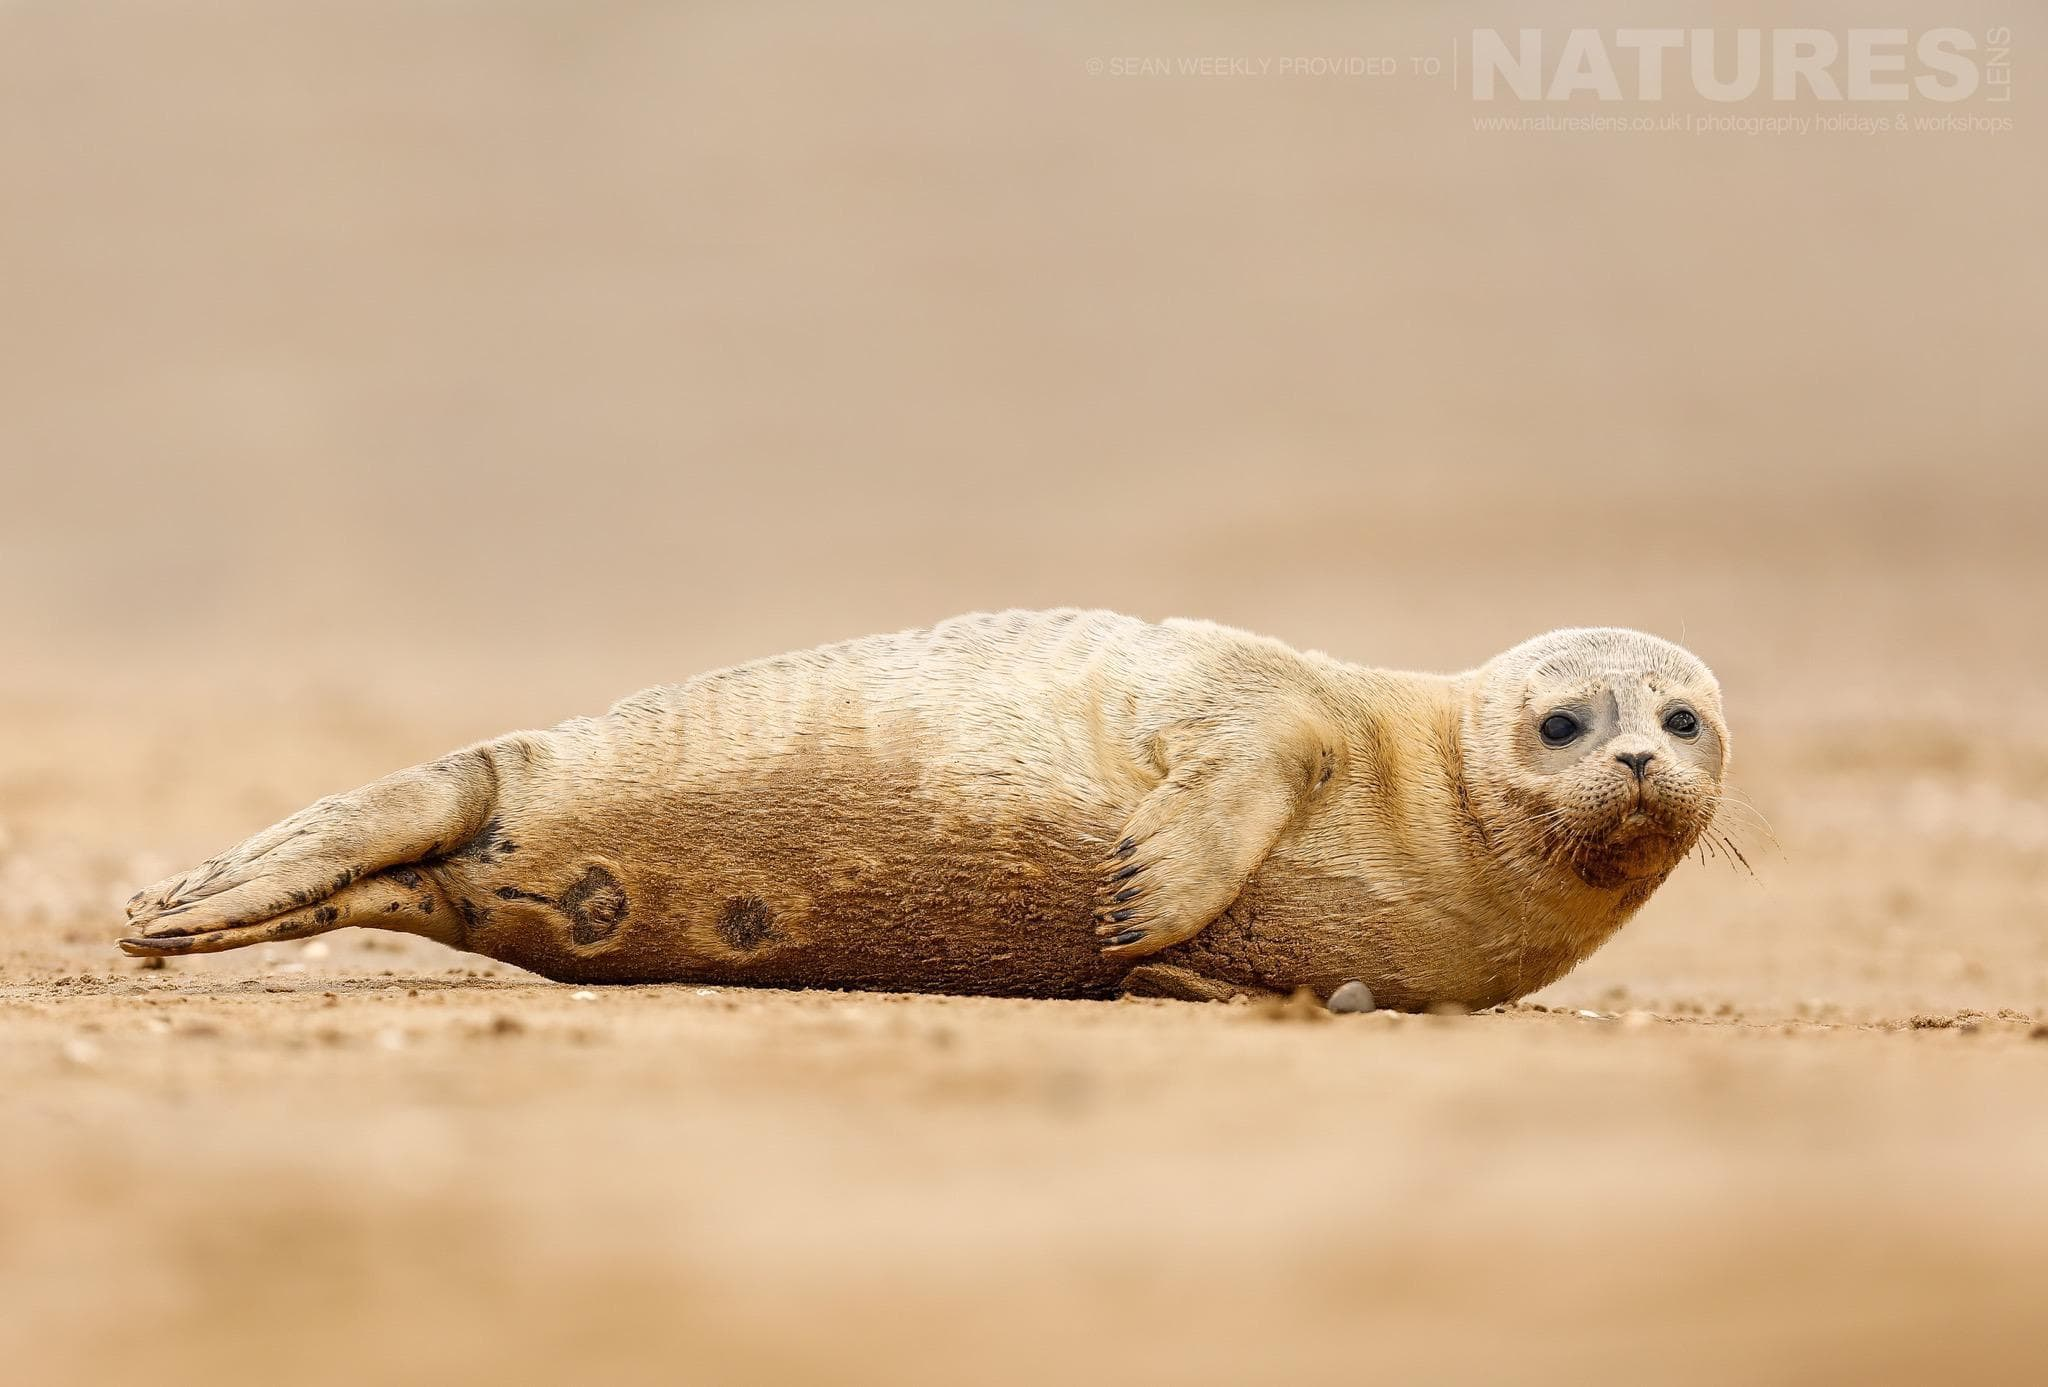 An atlantic grey seal pup laying on a secluded beach on the Lincolnshire coastline - typical of the type of image that participants of the NaturesLens Atlantic Grey Seals Photography Holiday will be able to capture